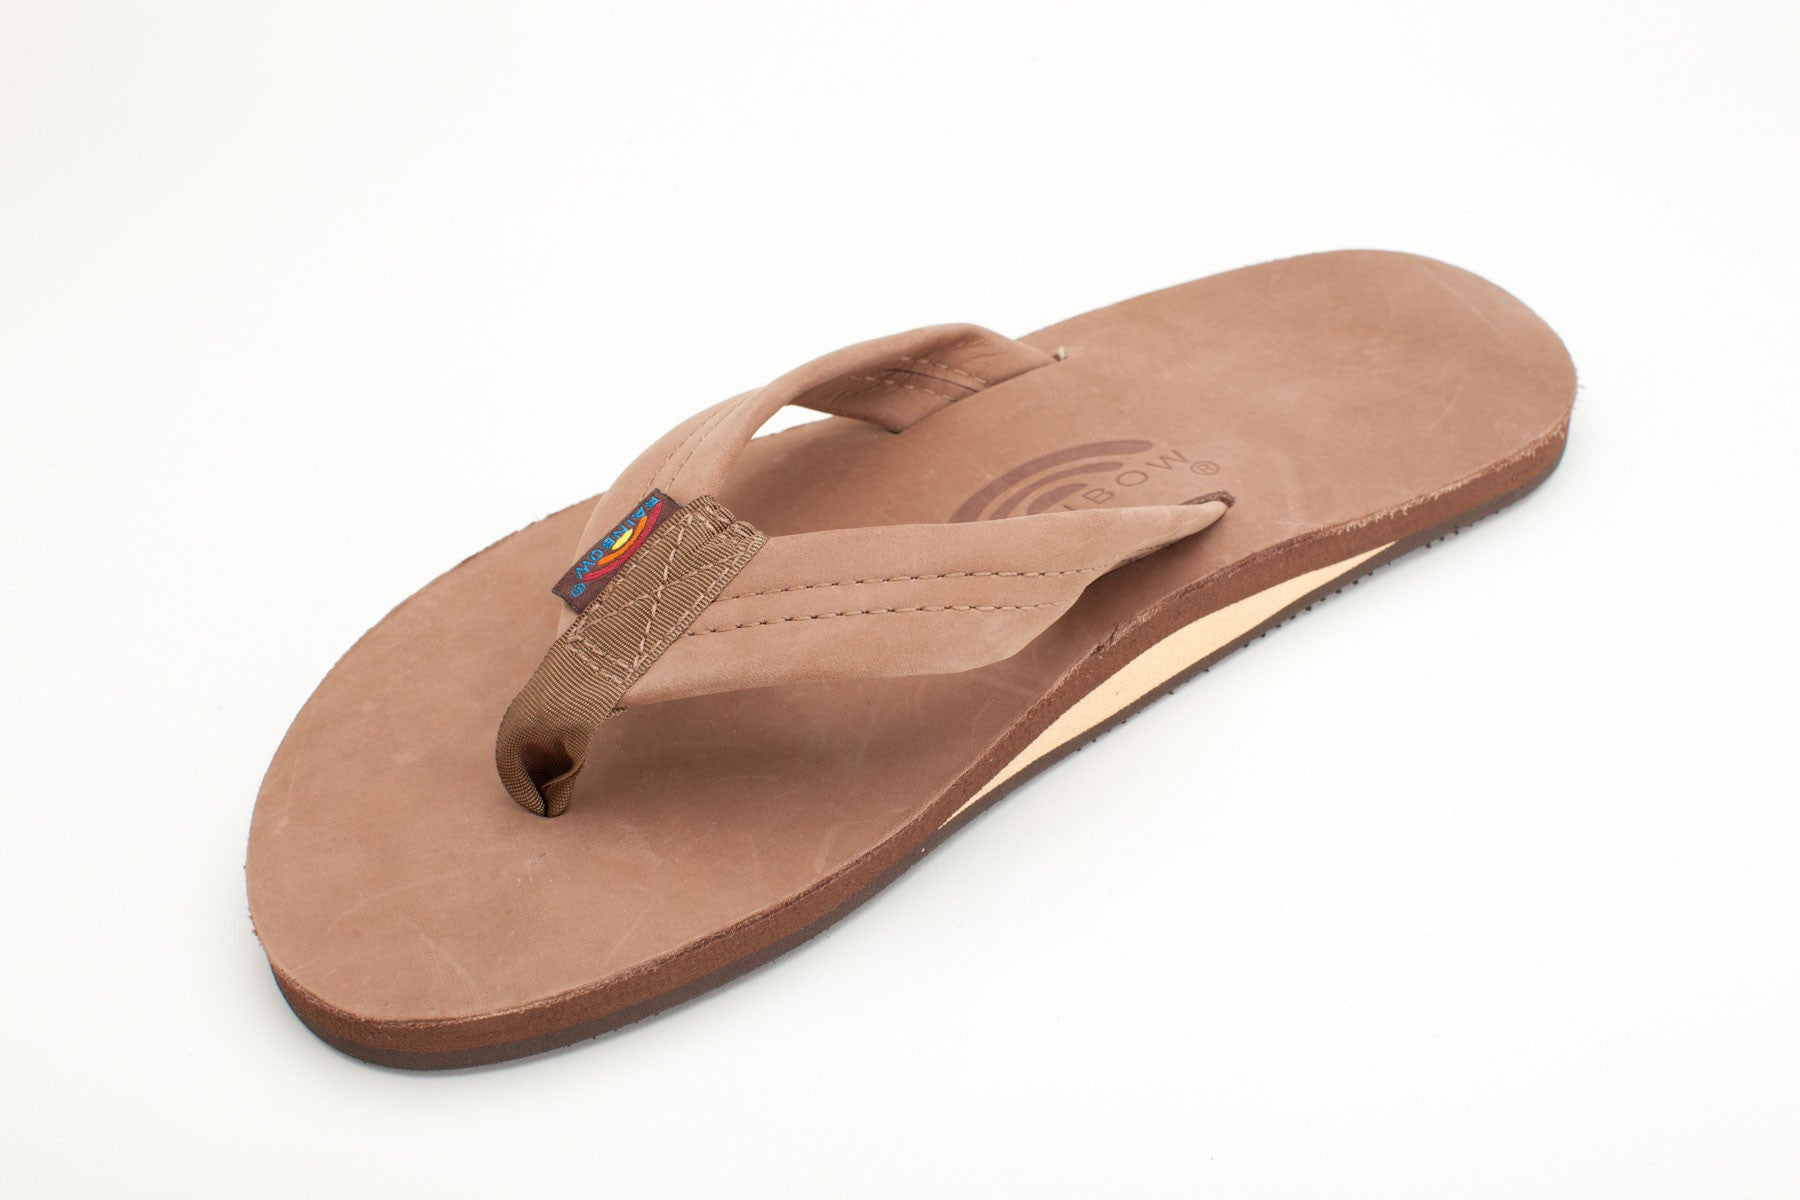 d7456e22e369 Rainbow Sandals Men s Dark Brown Premier Leather Single Layer with Arc –  Welcome to Footprint27.com